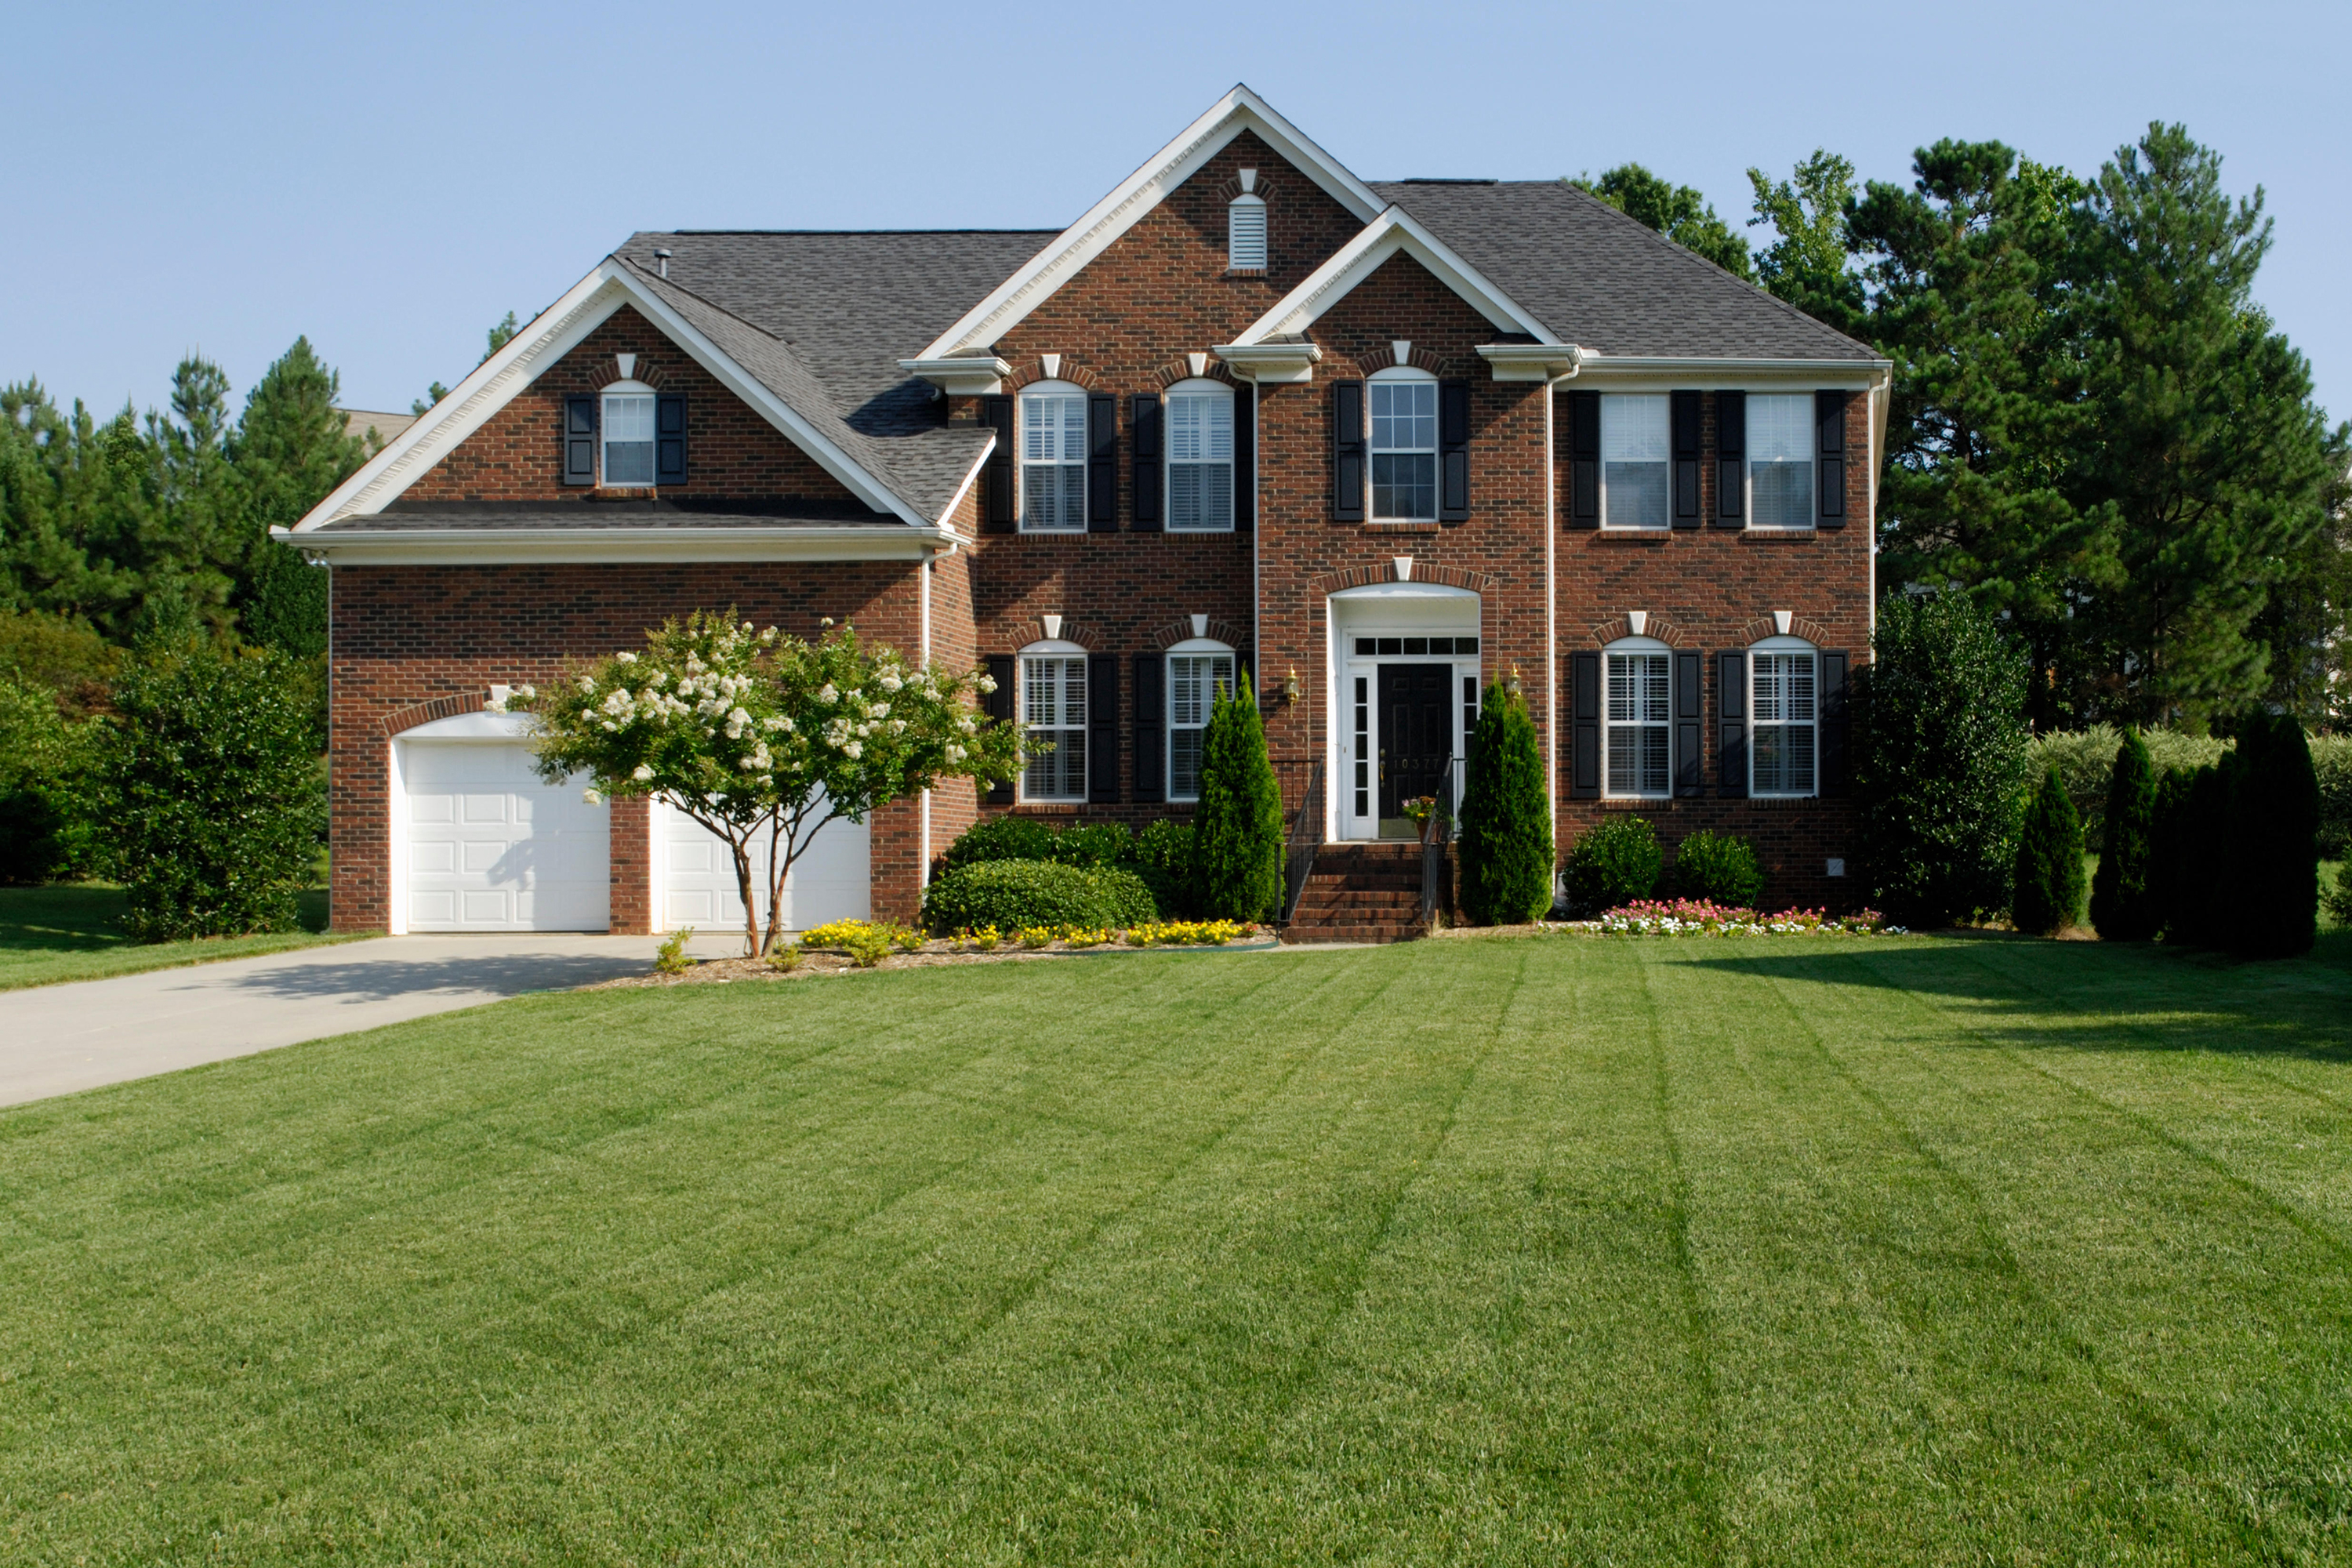 American home with a lush lawn.